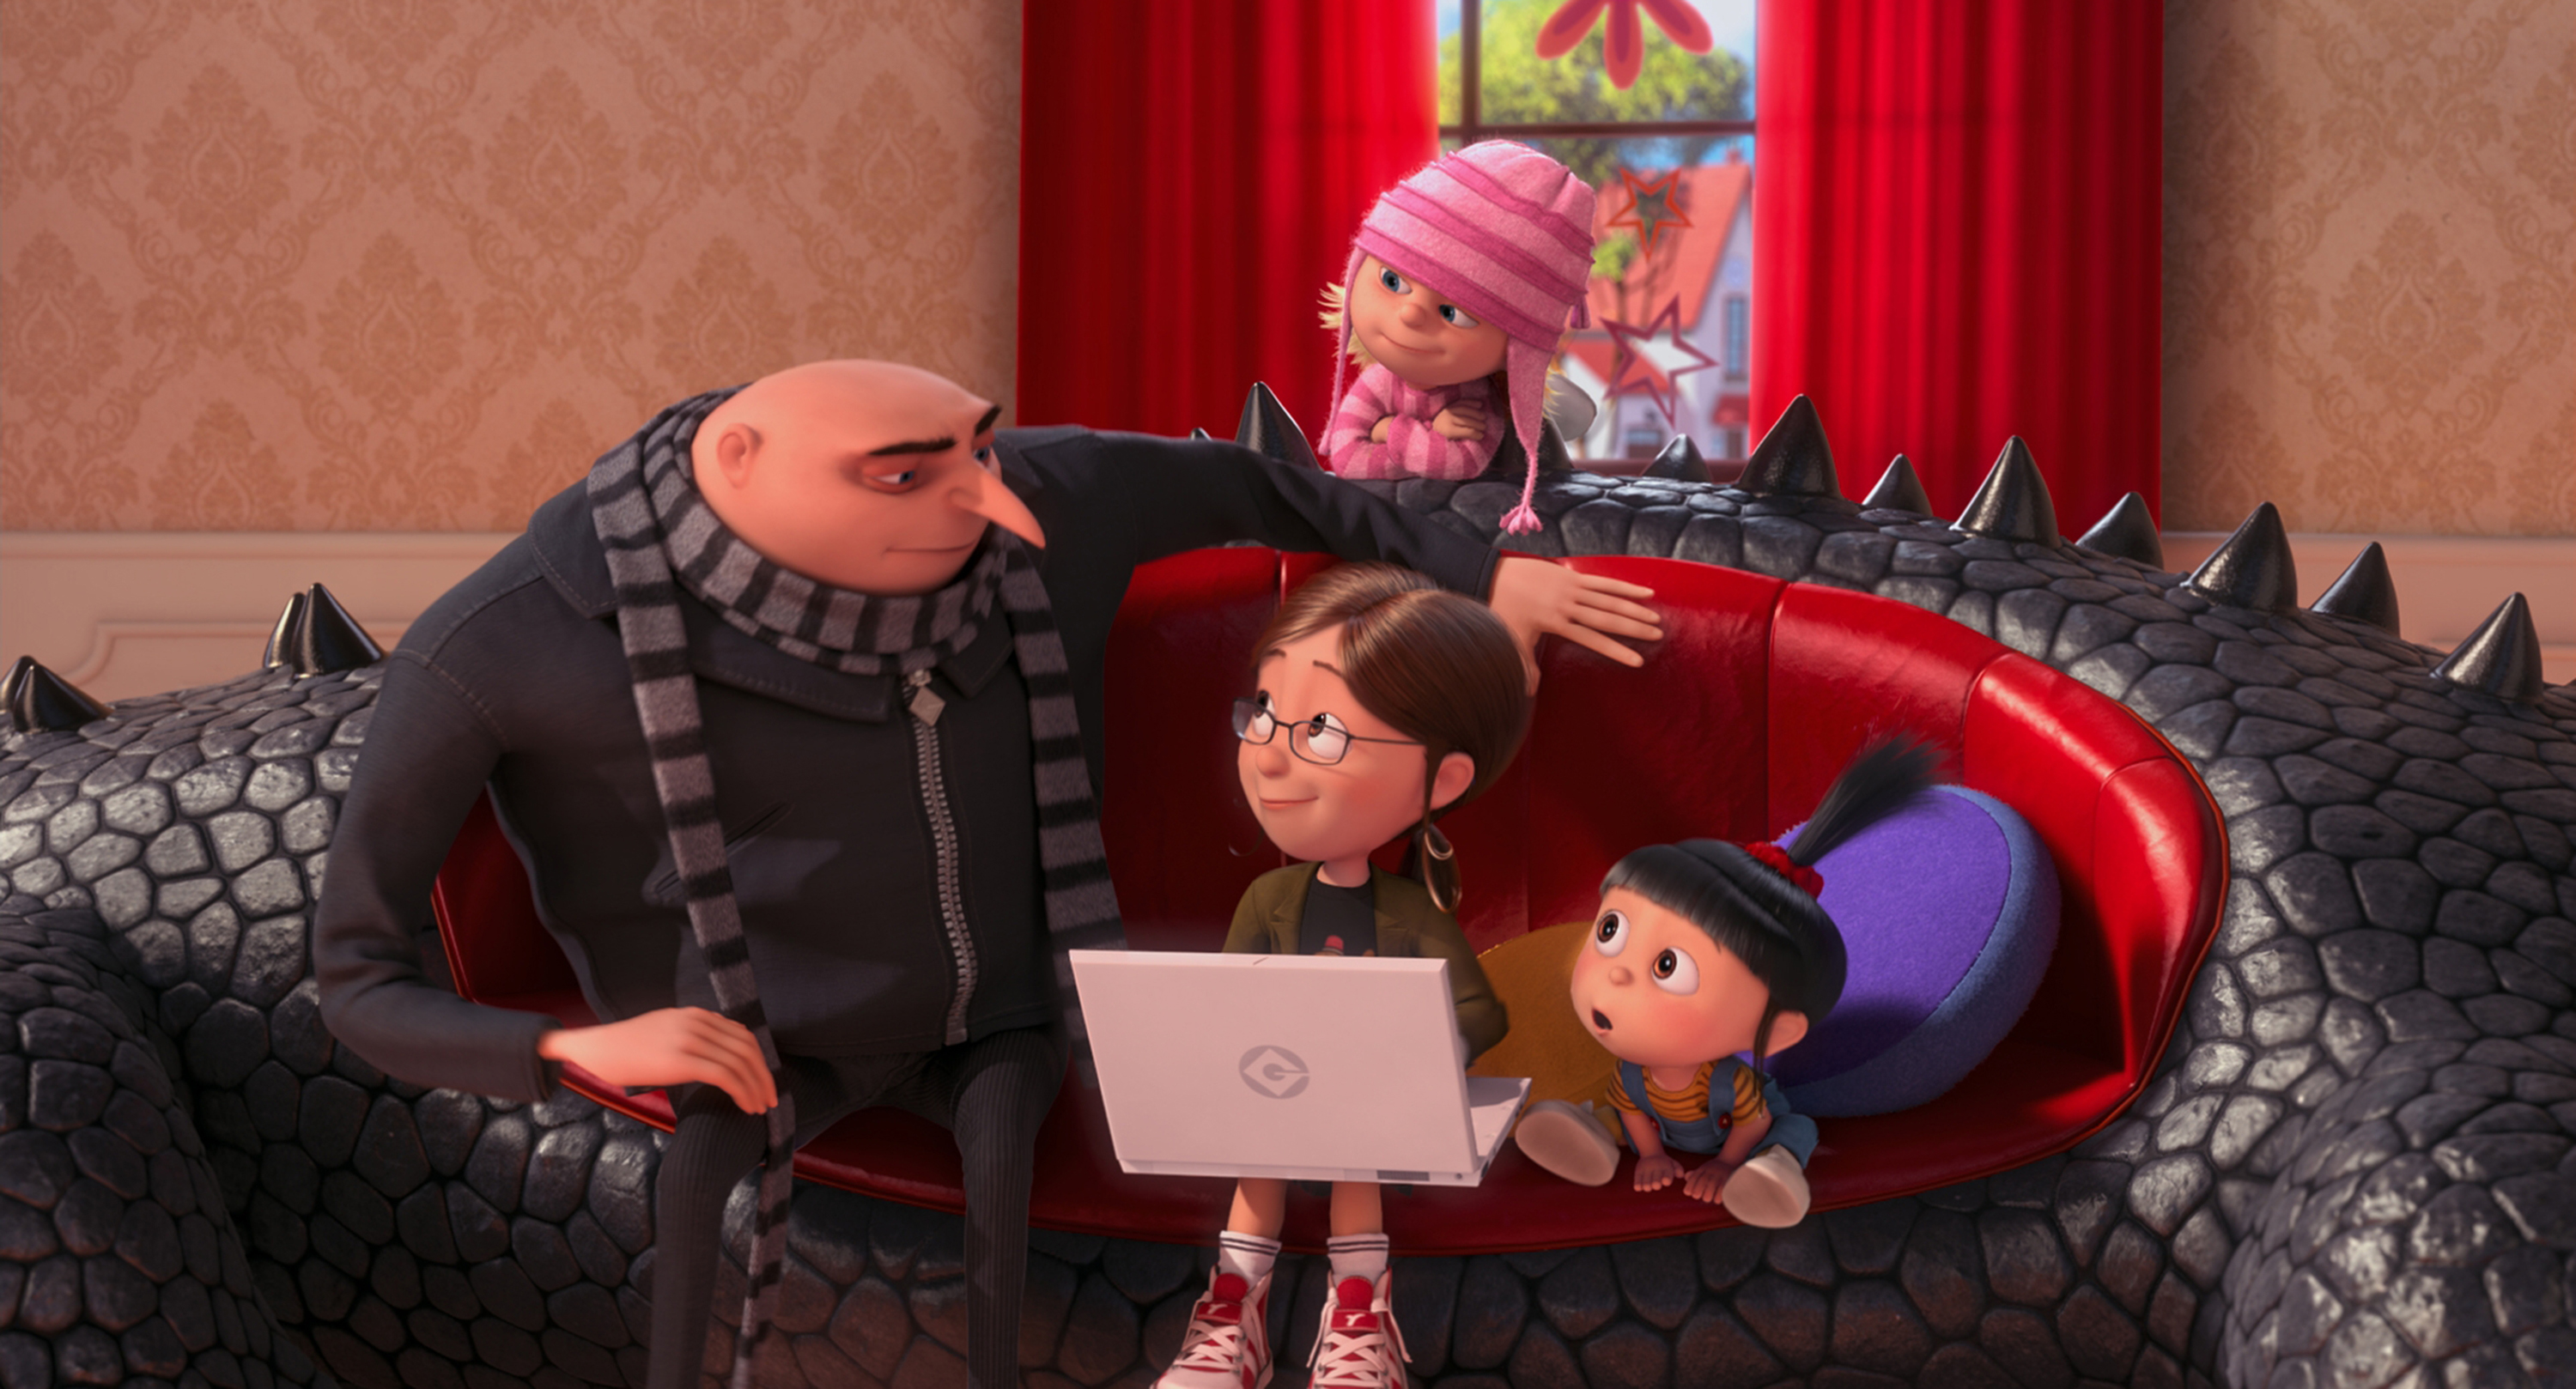 Despicable me 2 gru online dating - Craftowncom